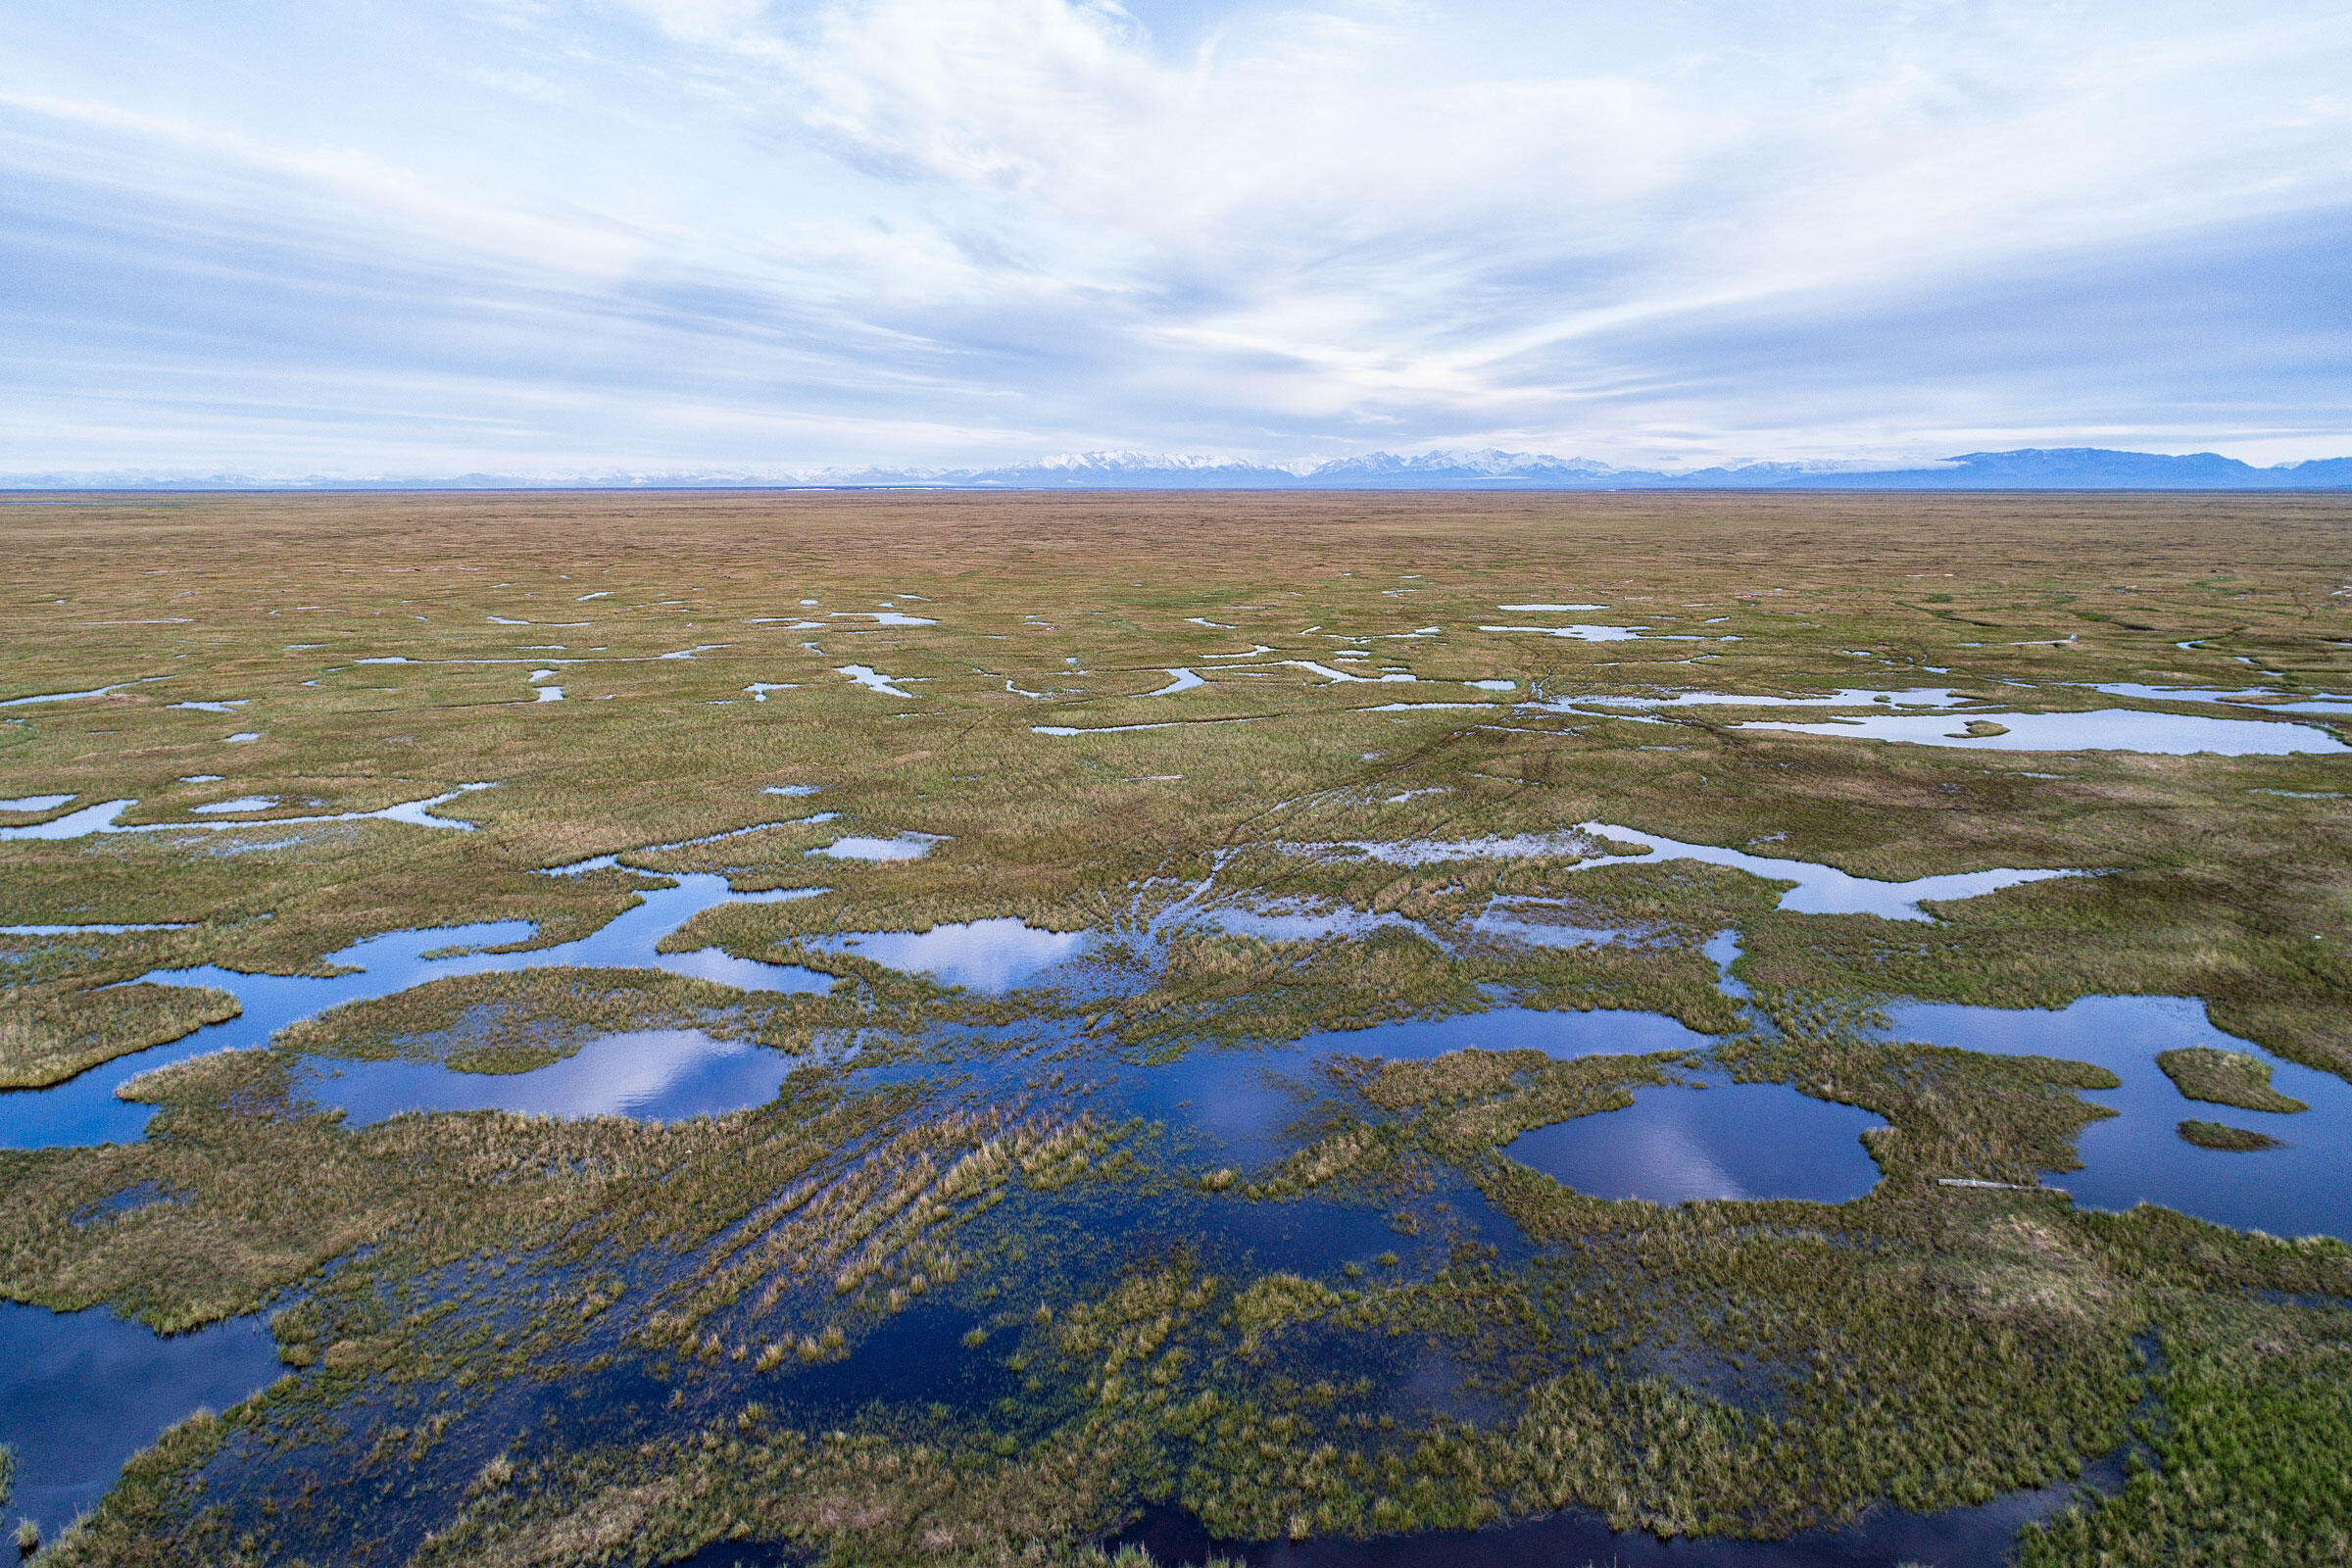 An aerial view of the lush 1002 lands. The refuge is home to more than 200 avian species, with the the coastal plain a critical nesting and rearing site for birds from all 50 states. Peter Mather